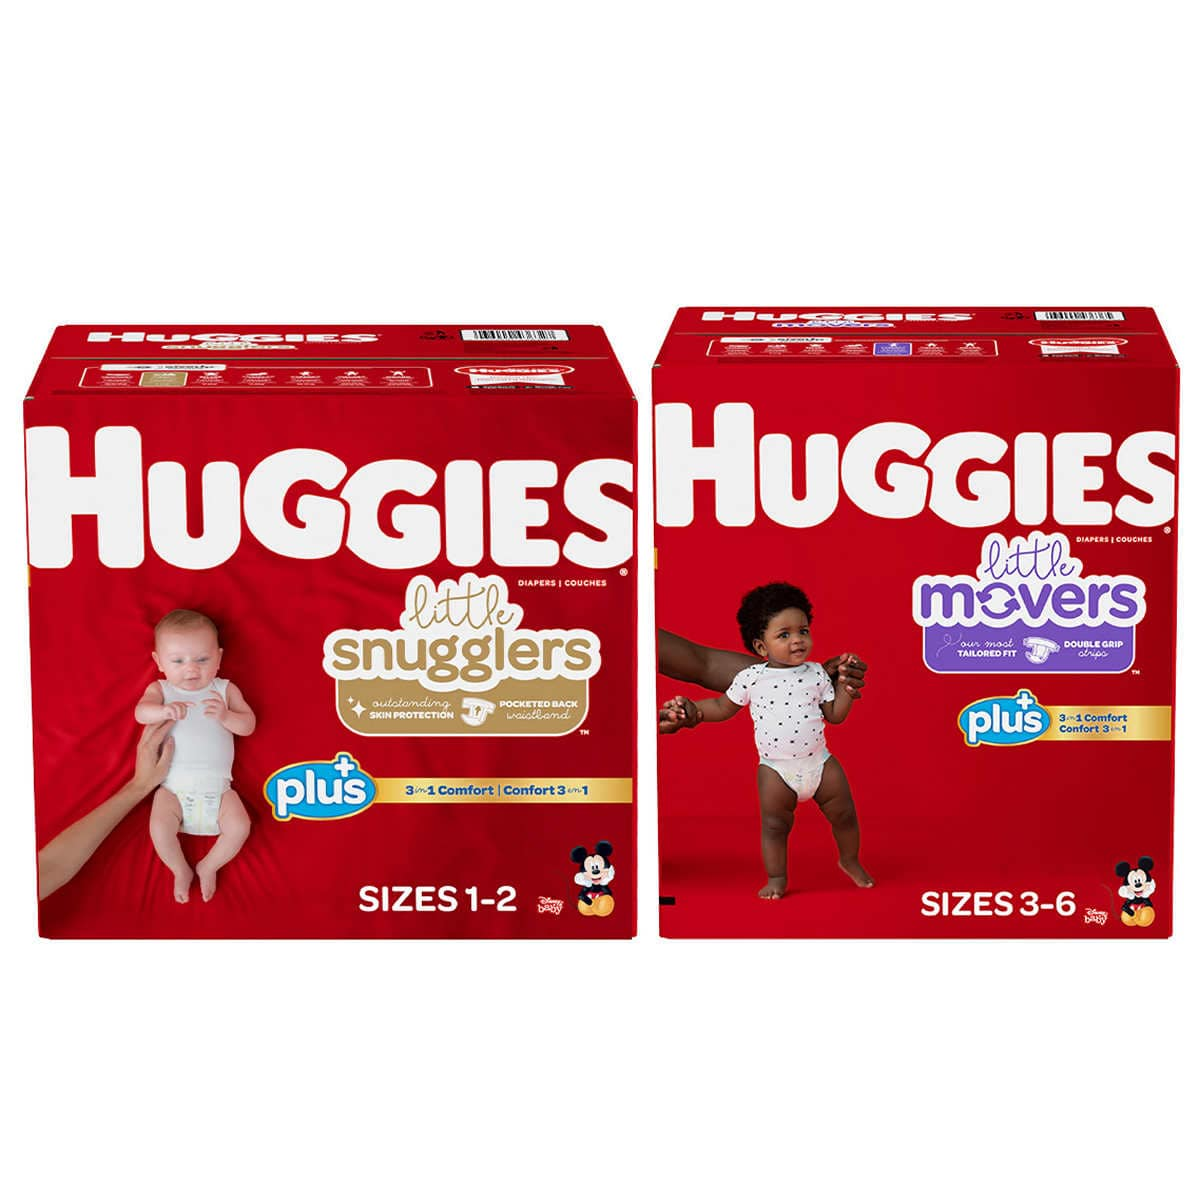 Huggies Plus Diapers Sizes 1 - 6 $9.00 Off Until September 29 $45.99